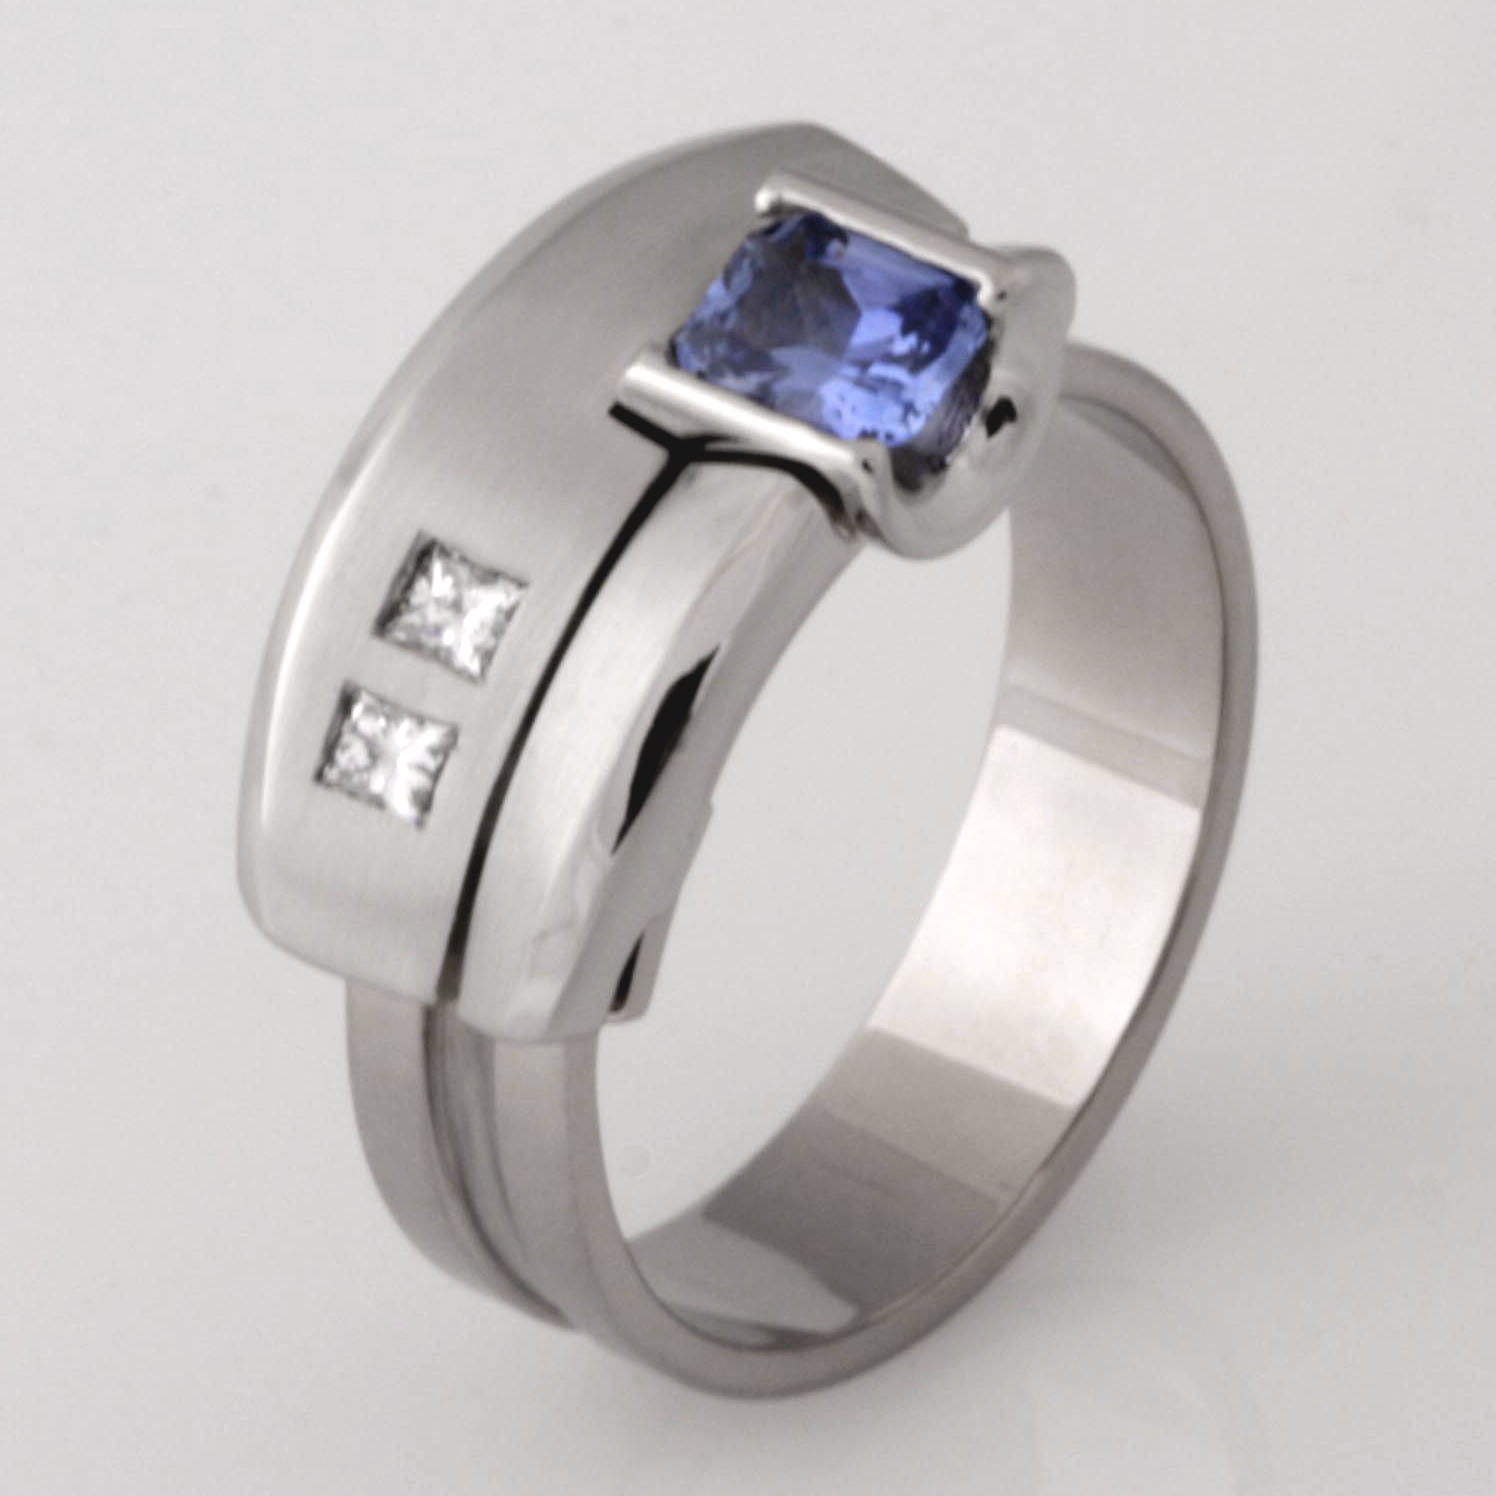 Handmade 18ct white gold and palladium Archie style ring featuring diamonds and Ceylon sapphire